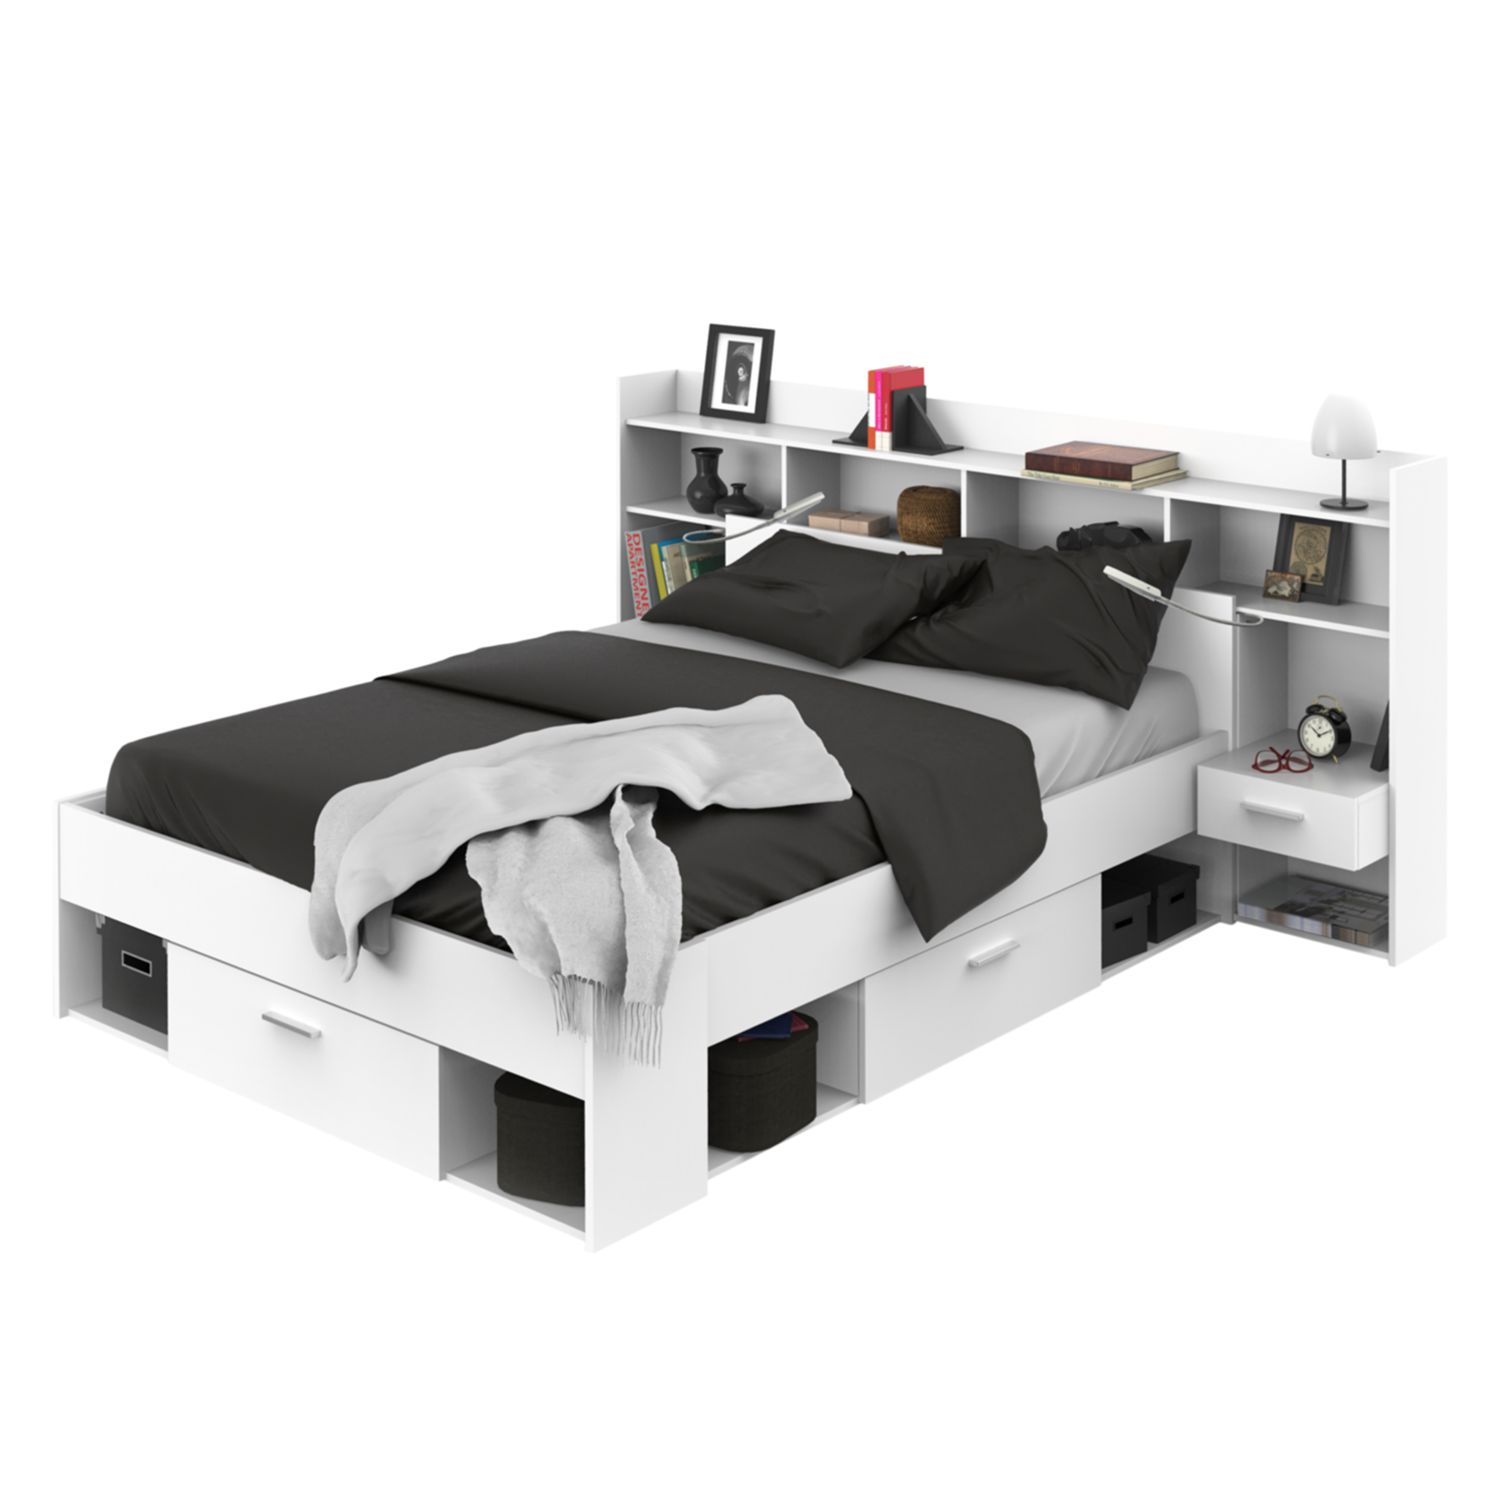 Bed met opbergruimte Chicago - Wit, Kids Club Collection